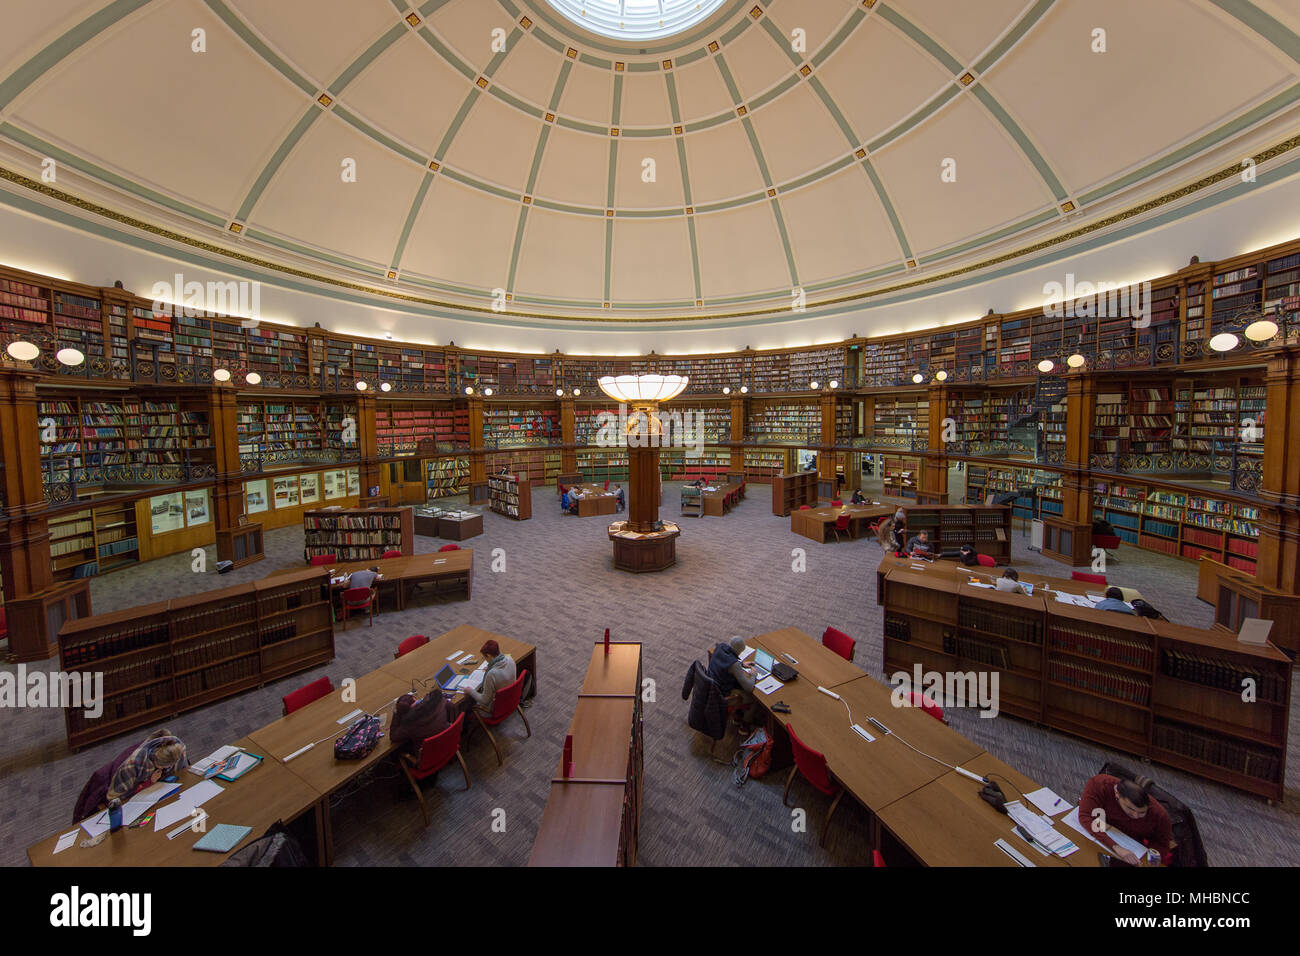 Interior of the Picton Reading Room in Liverpool's Central Library Stock Photo